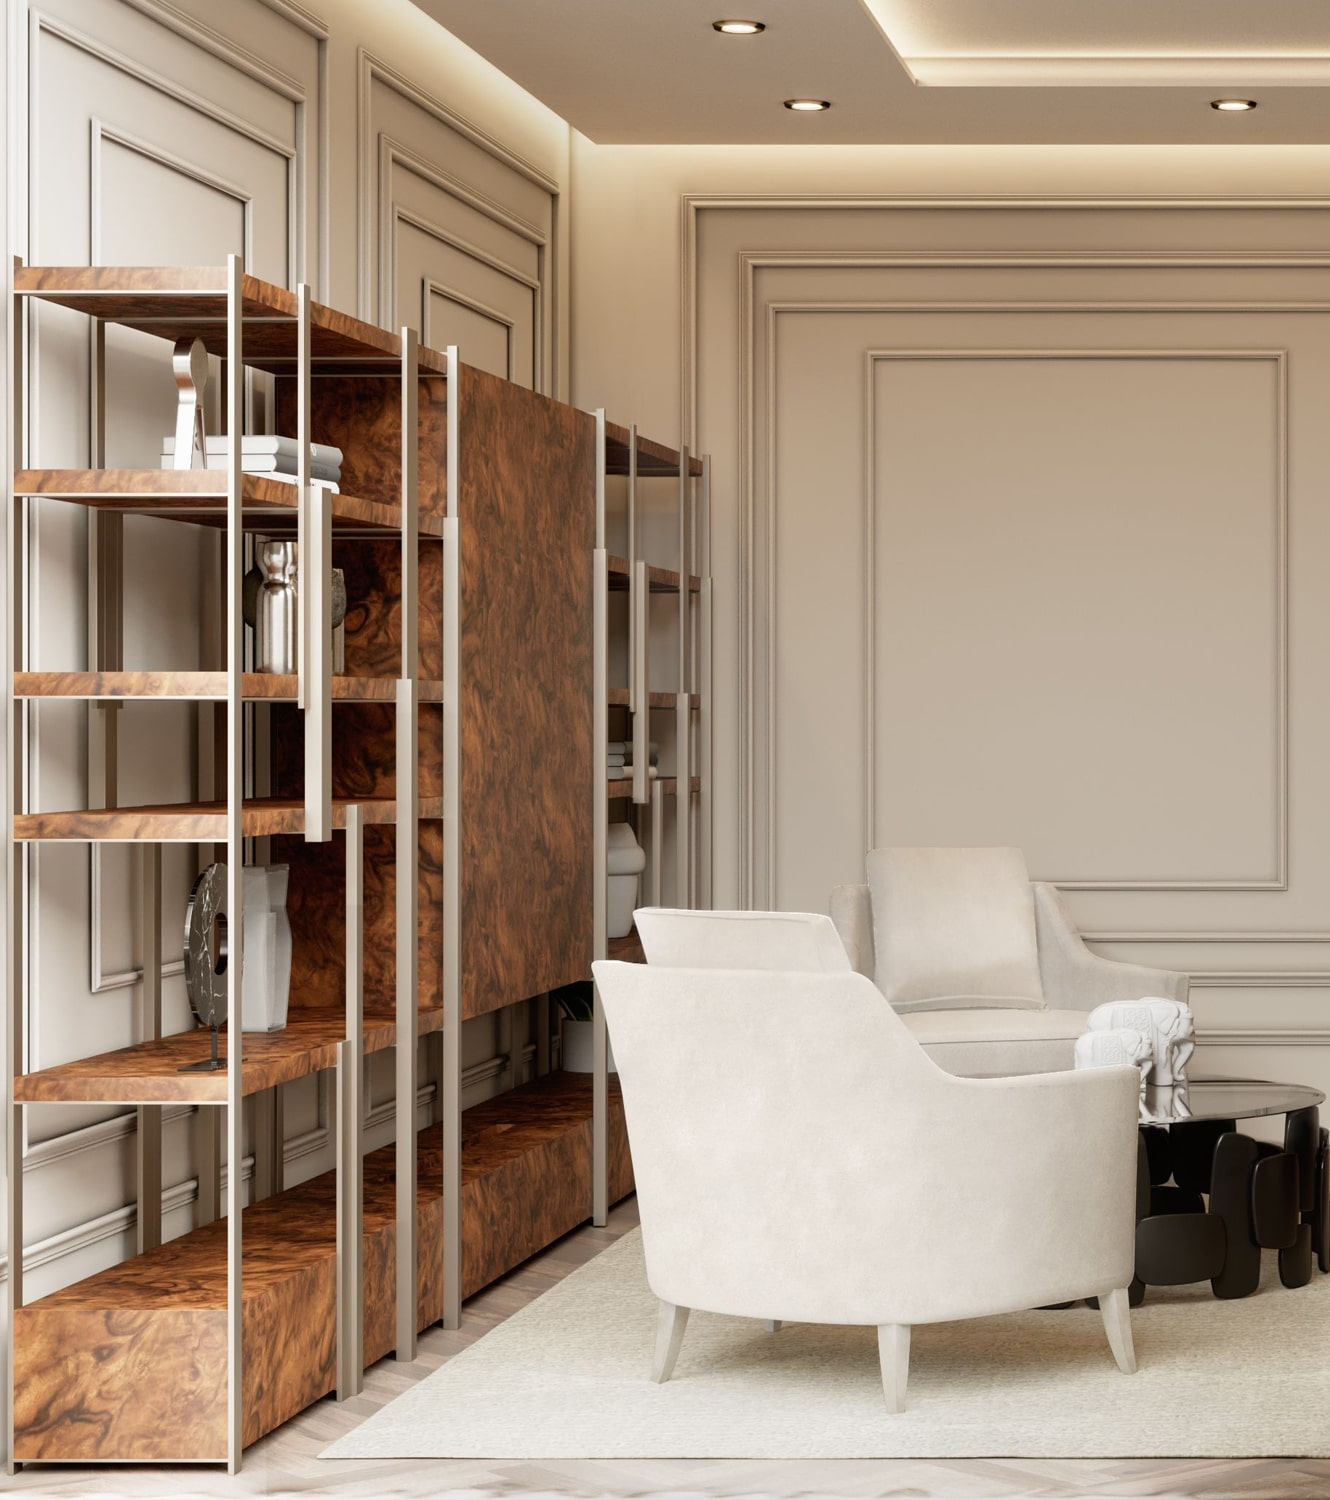 office - AN EXCEPTIONAL CONTEMPORARY MODERN 16 MILLION PENTHOUSE IN MONACO